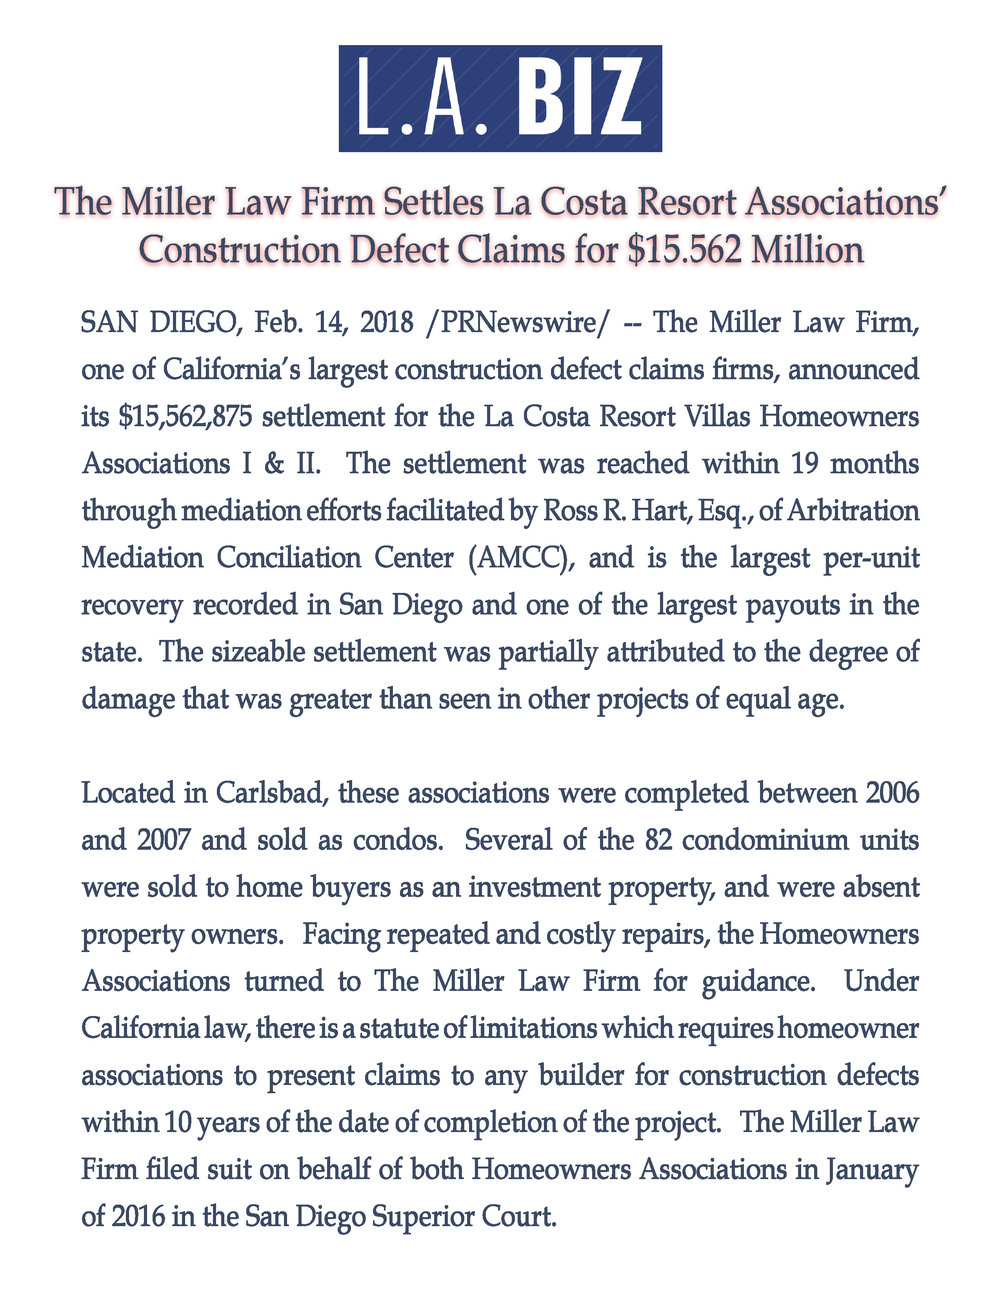 The Miller Law Firm Settles La Costa Resort Associations' Construction Defect Claims for $15.562 Million